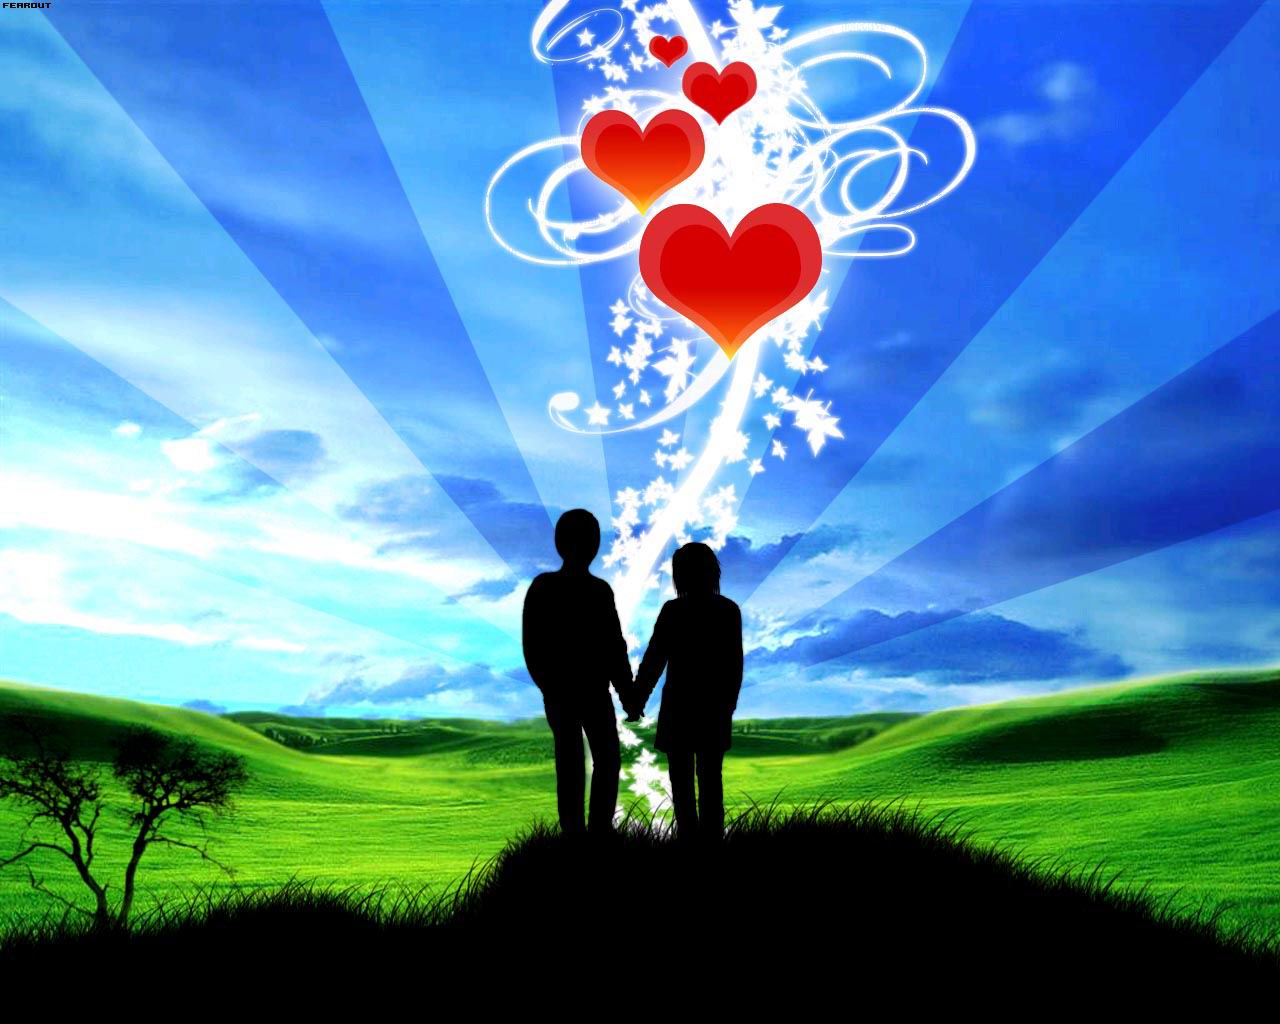 Love Images For Wallpaper : Love Wallpapers HD Nice Wallpapers